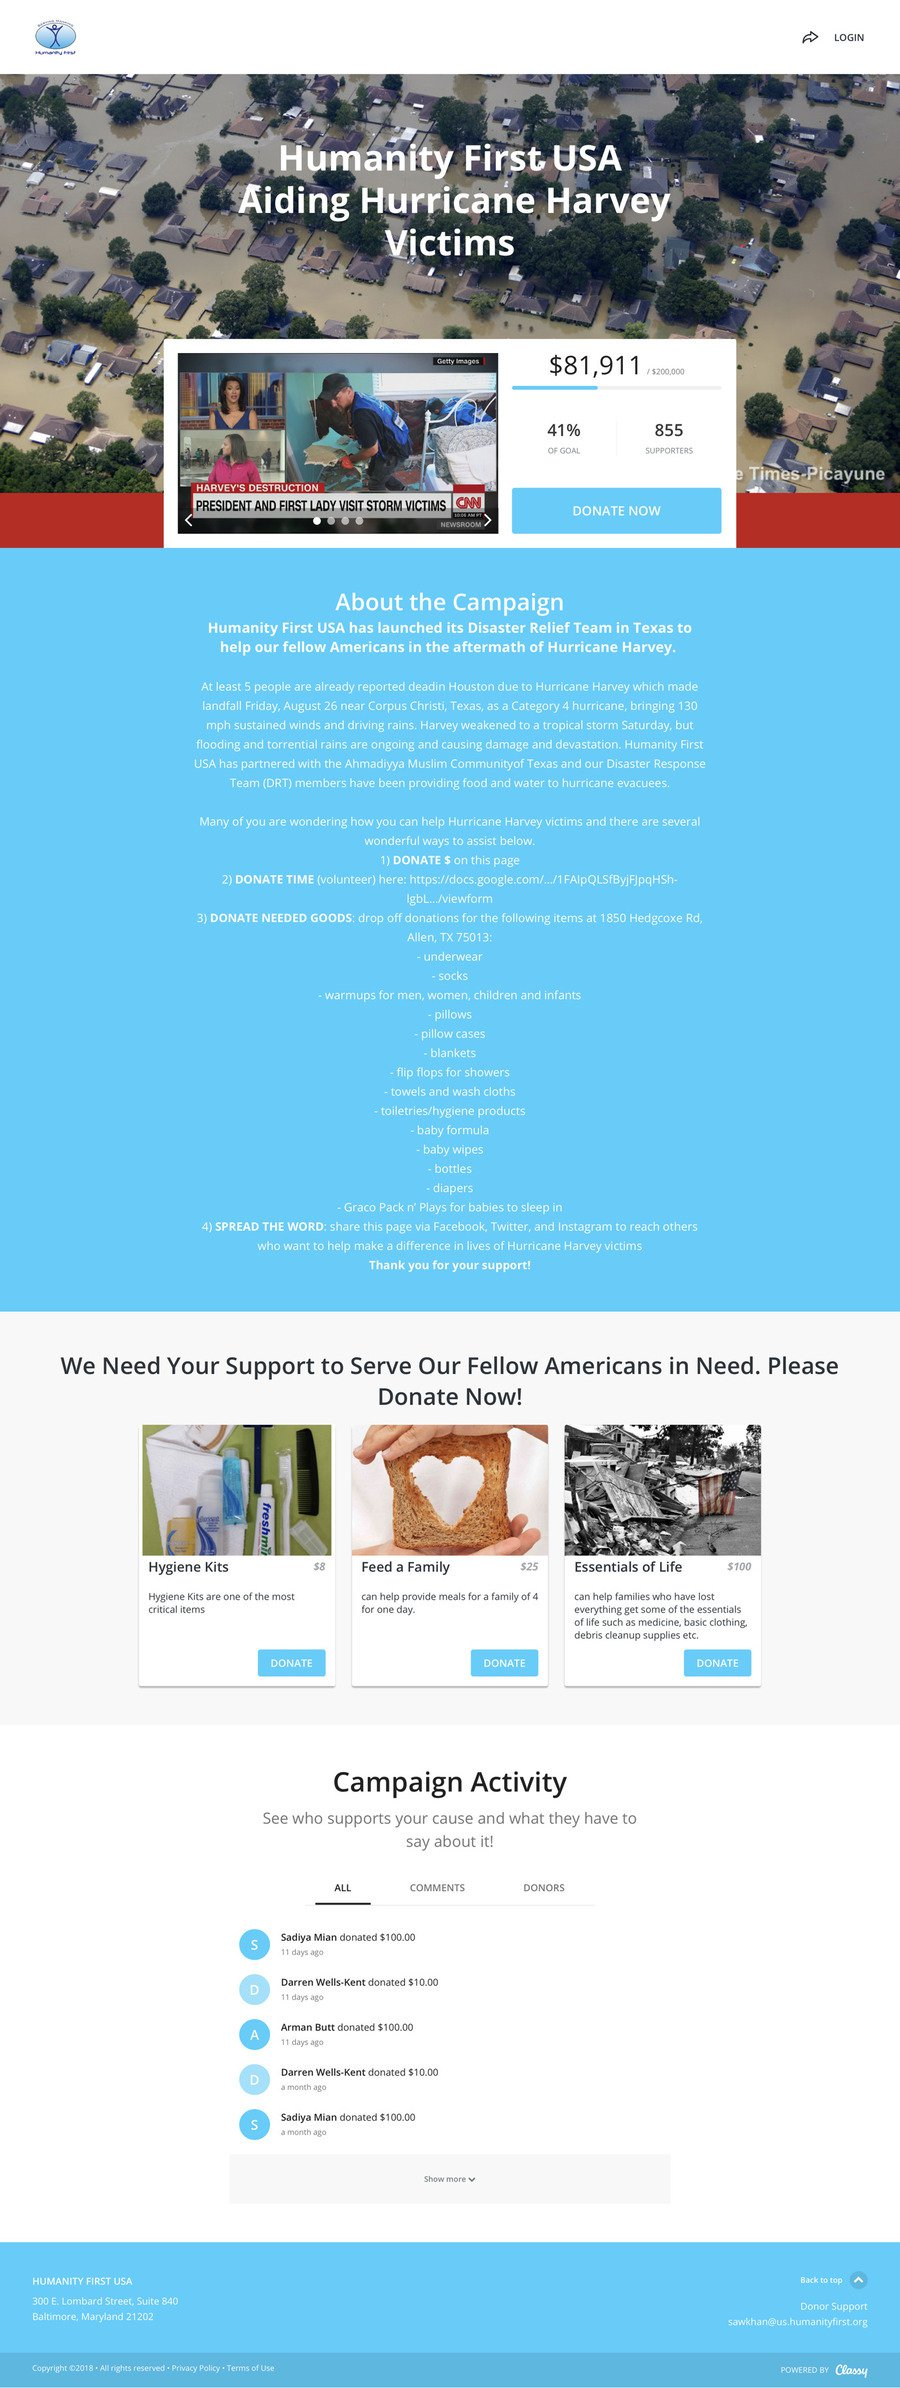 Humanity First USA Hurricane Harvey Relief , a Crowdfunding campaign on Classy.org